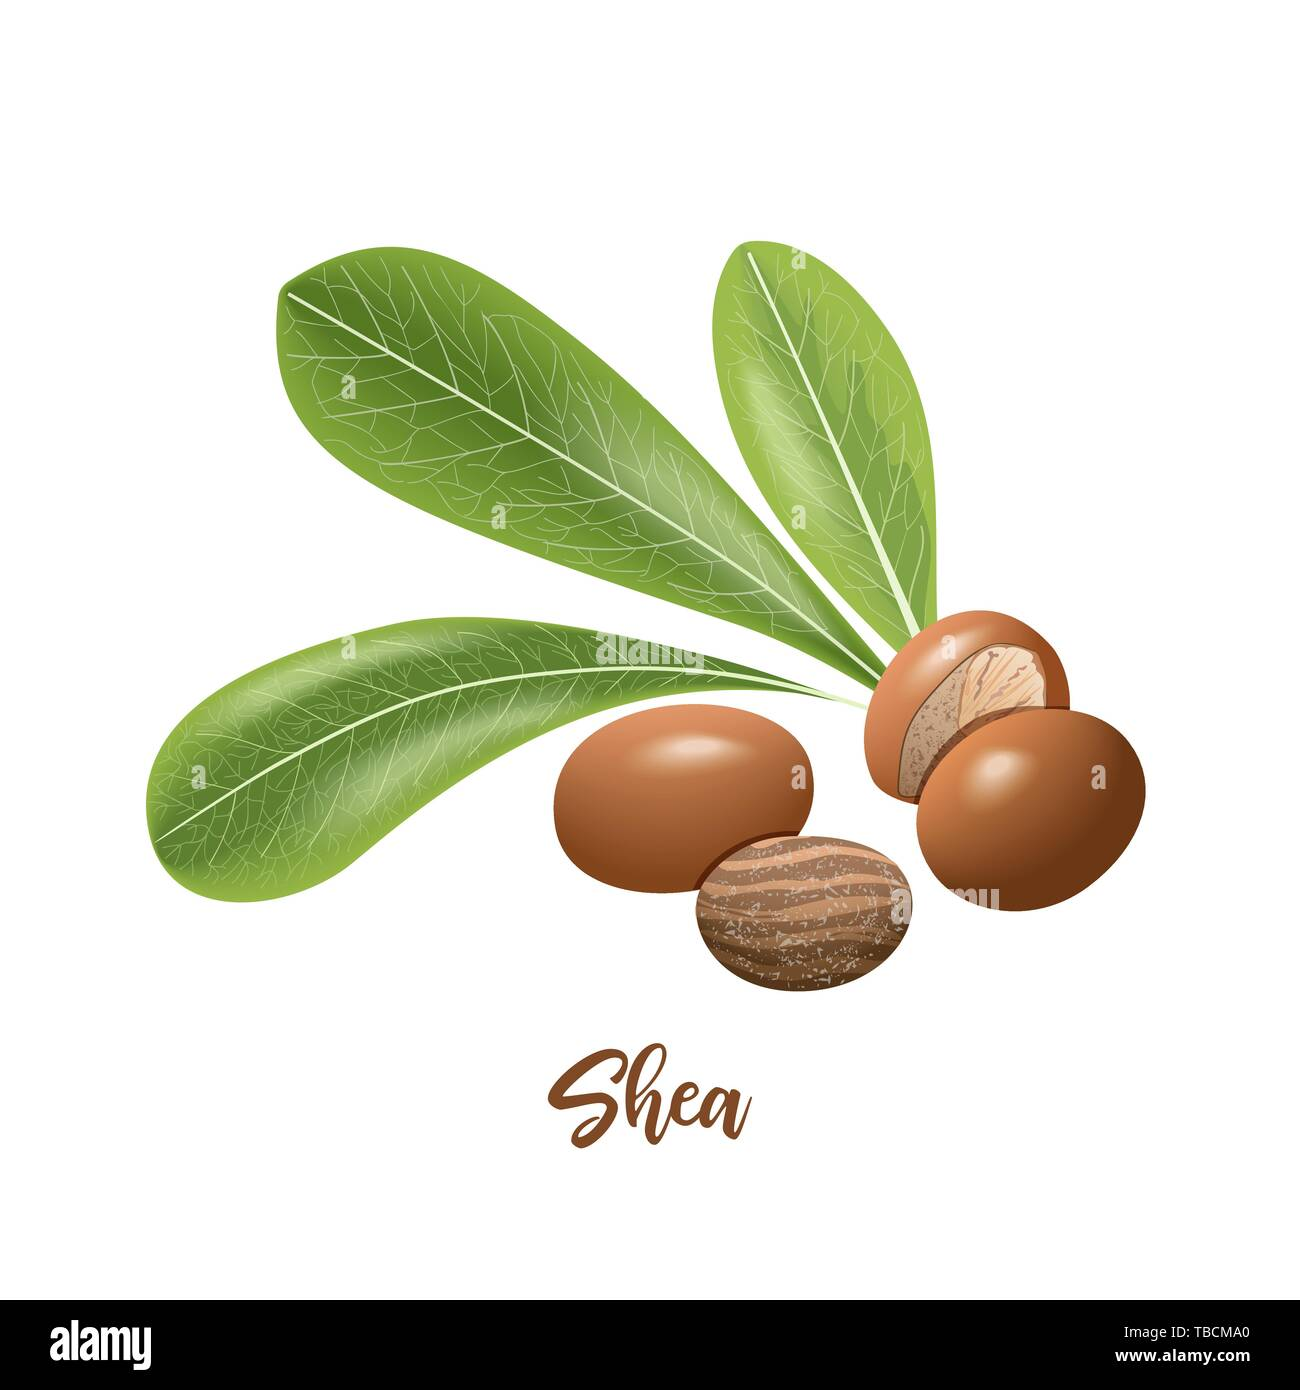 Shea nuts and leaves. shi tree pods whole and peeled. Vitellaria paradoxa. Card template copy space. Oilplant Stock Vector